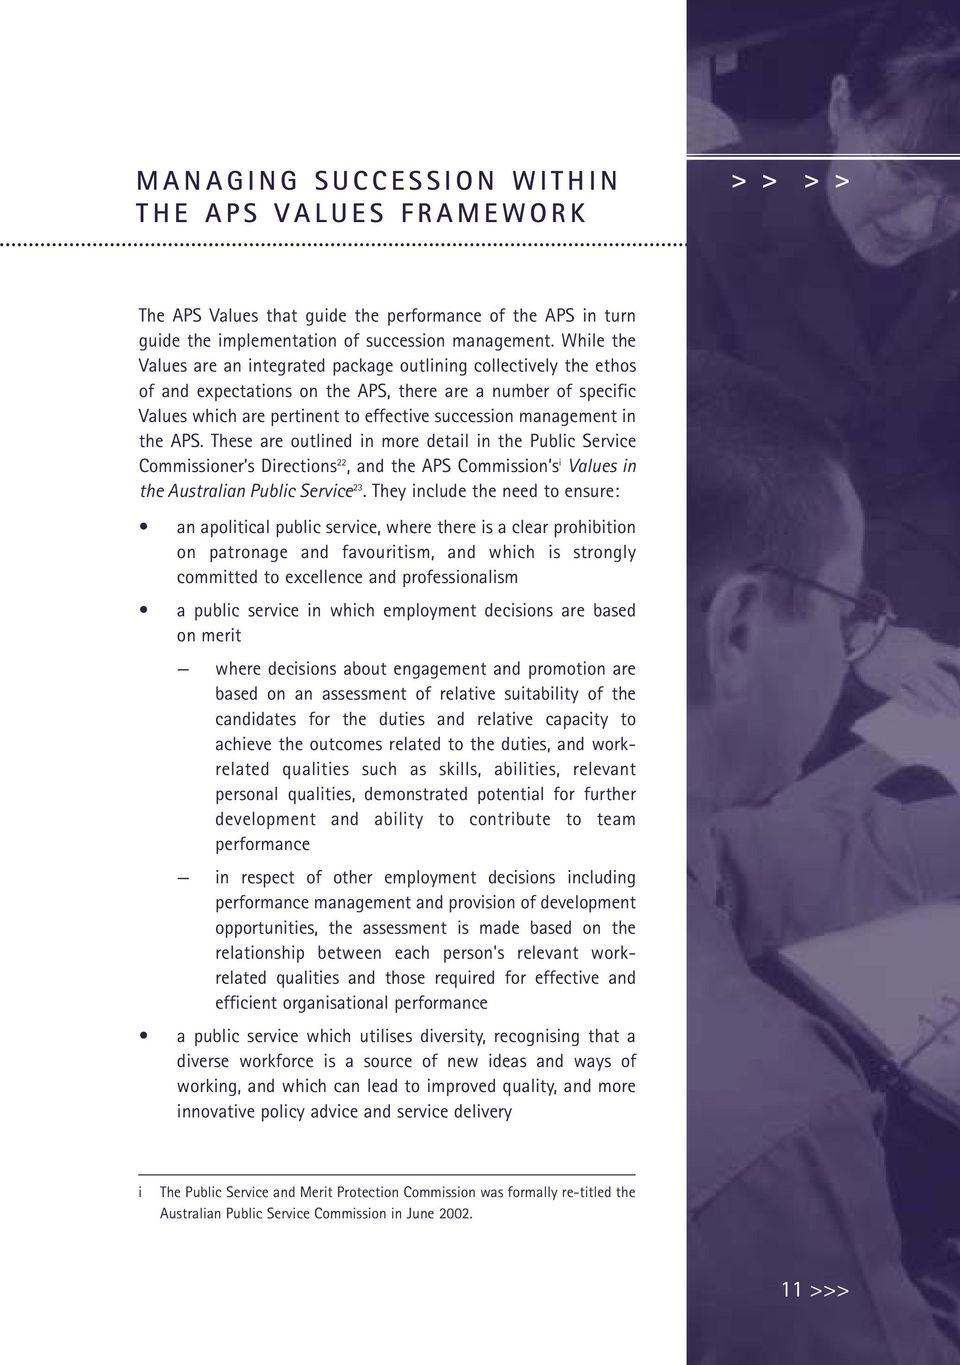 management in the APS. These are outlined in more detail in the Public Service Commissioner s Directions 22, and the APS Commission s i Values in the Australian Public Service 23.